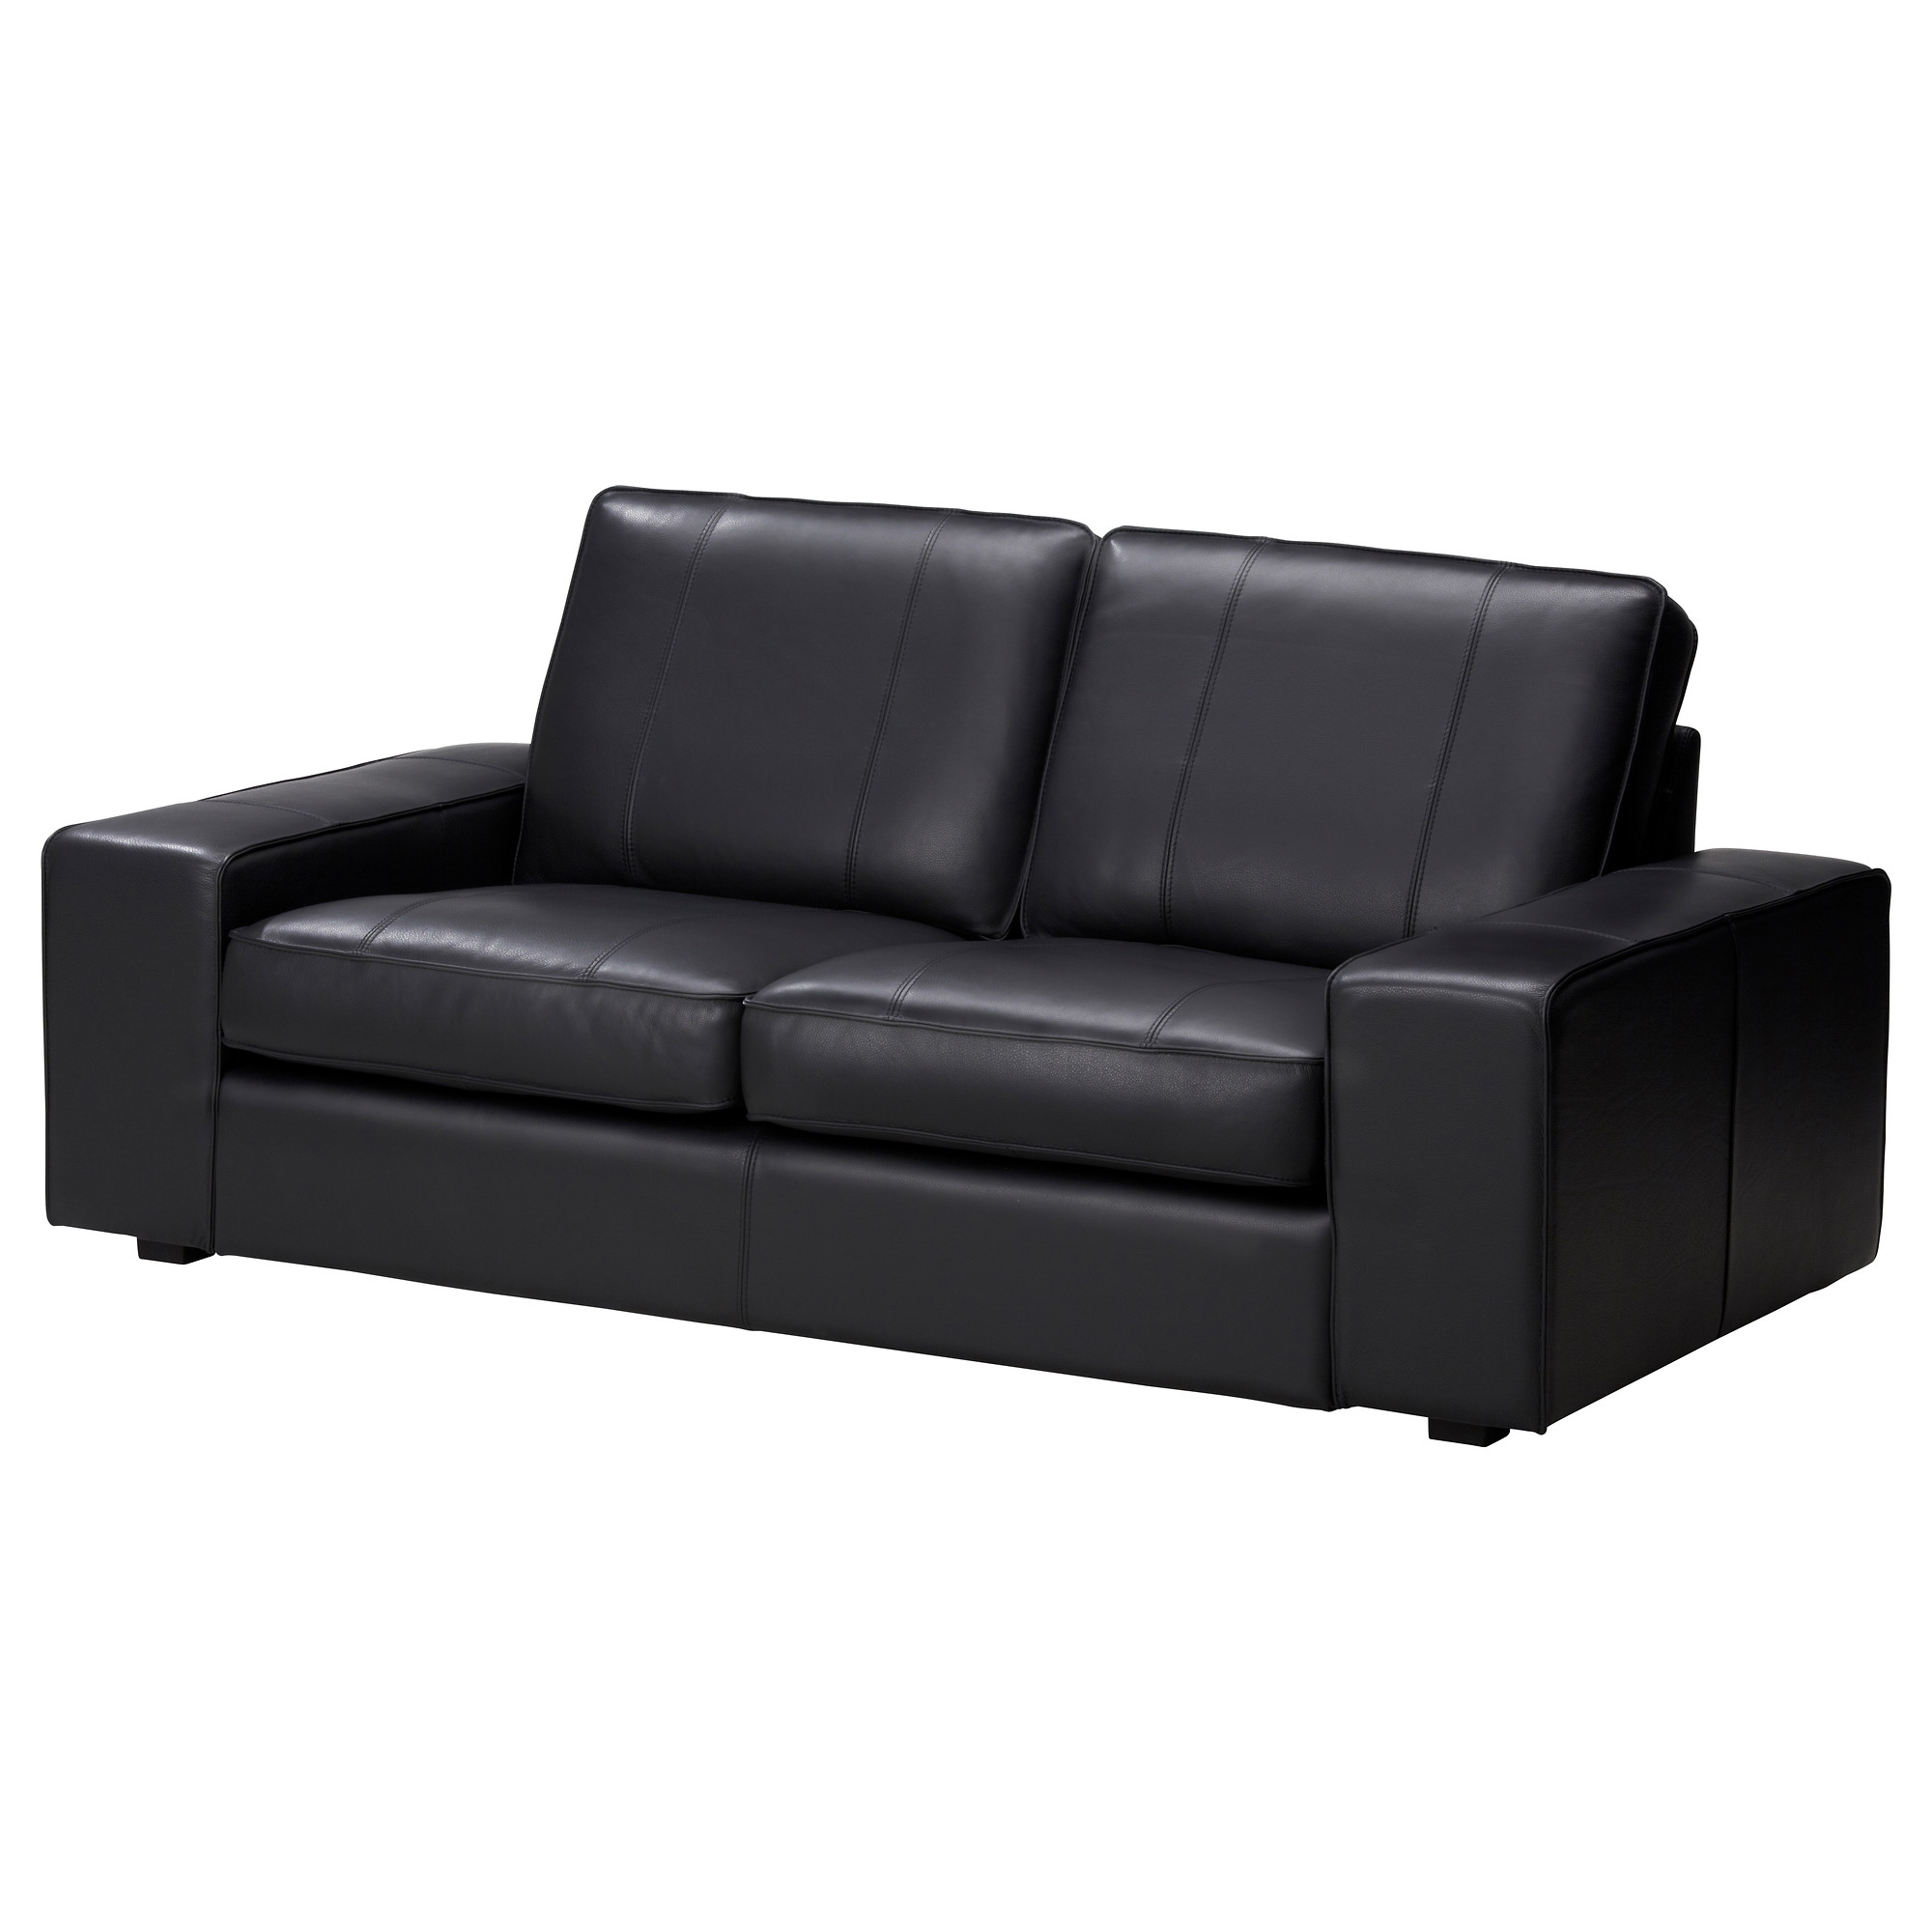 Leather Faux Leather Couches Chairs Ottomans Ikea Throughout Wide Sofa Chairs (Image 6 of 15)